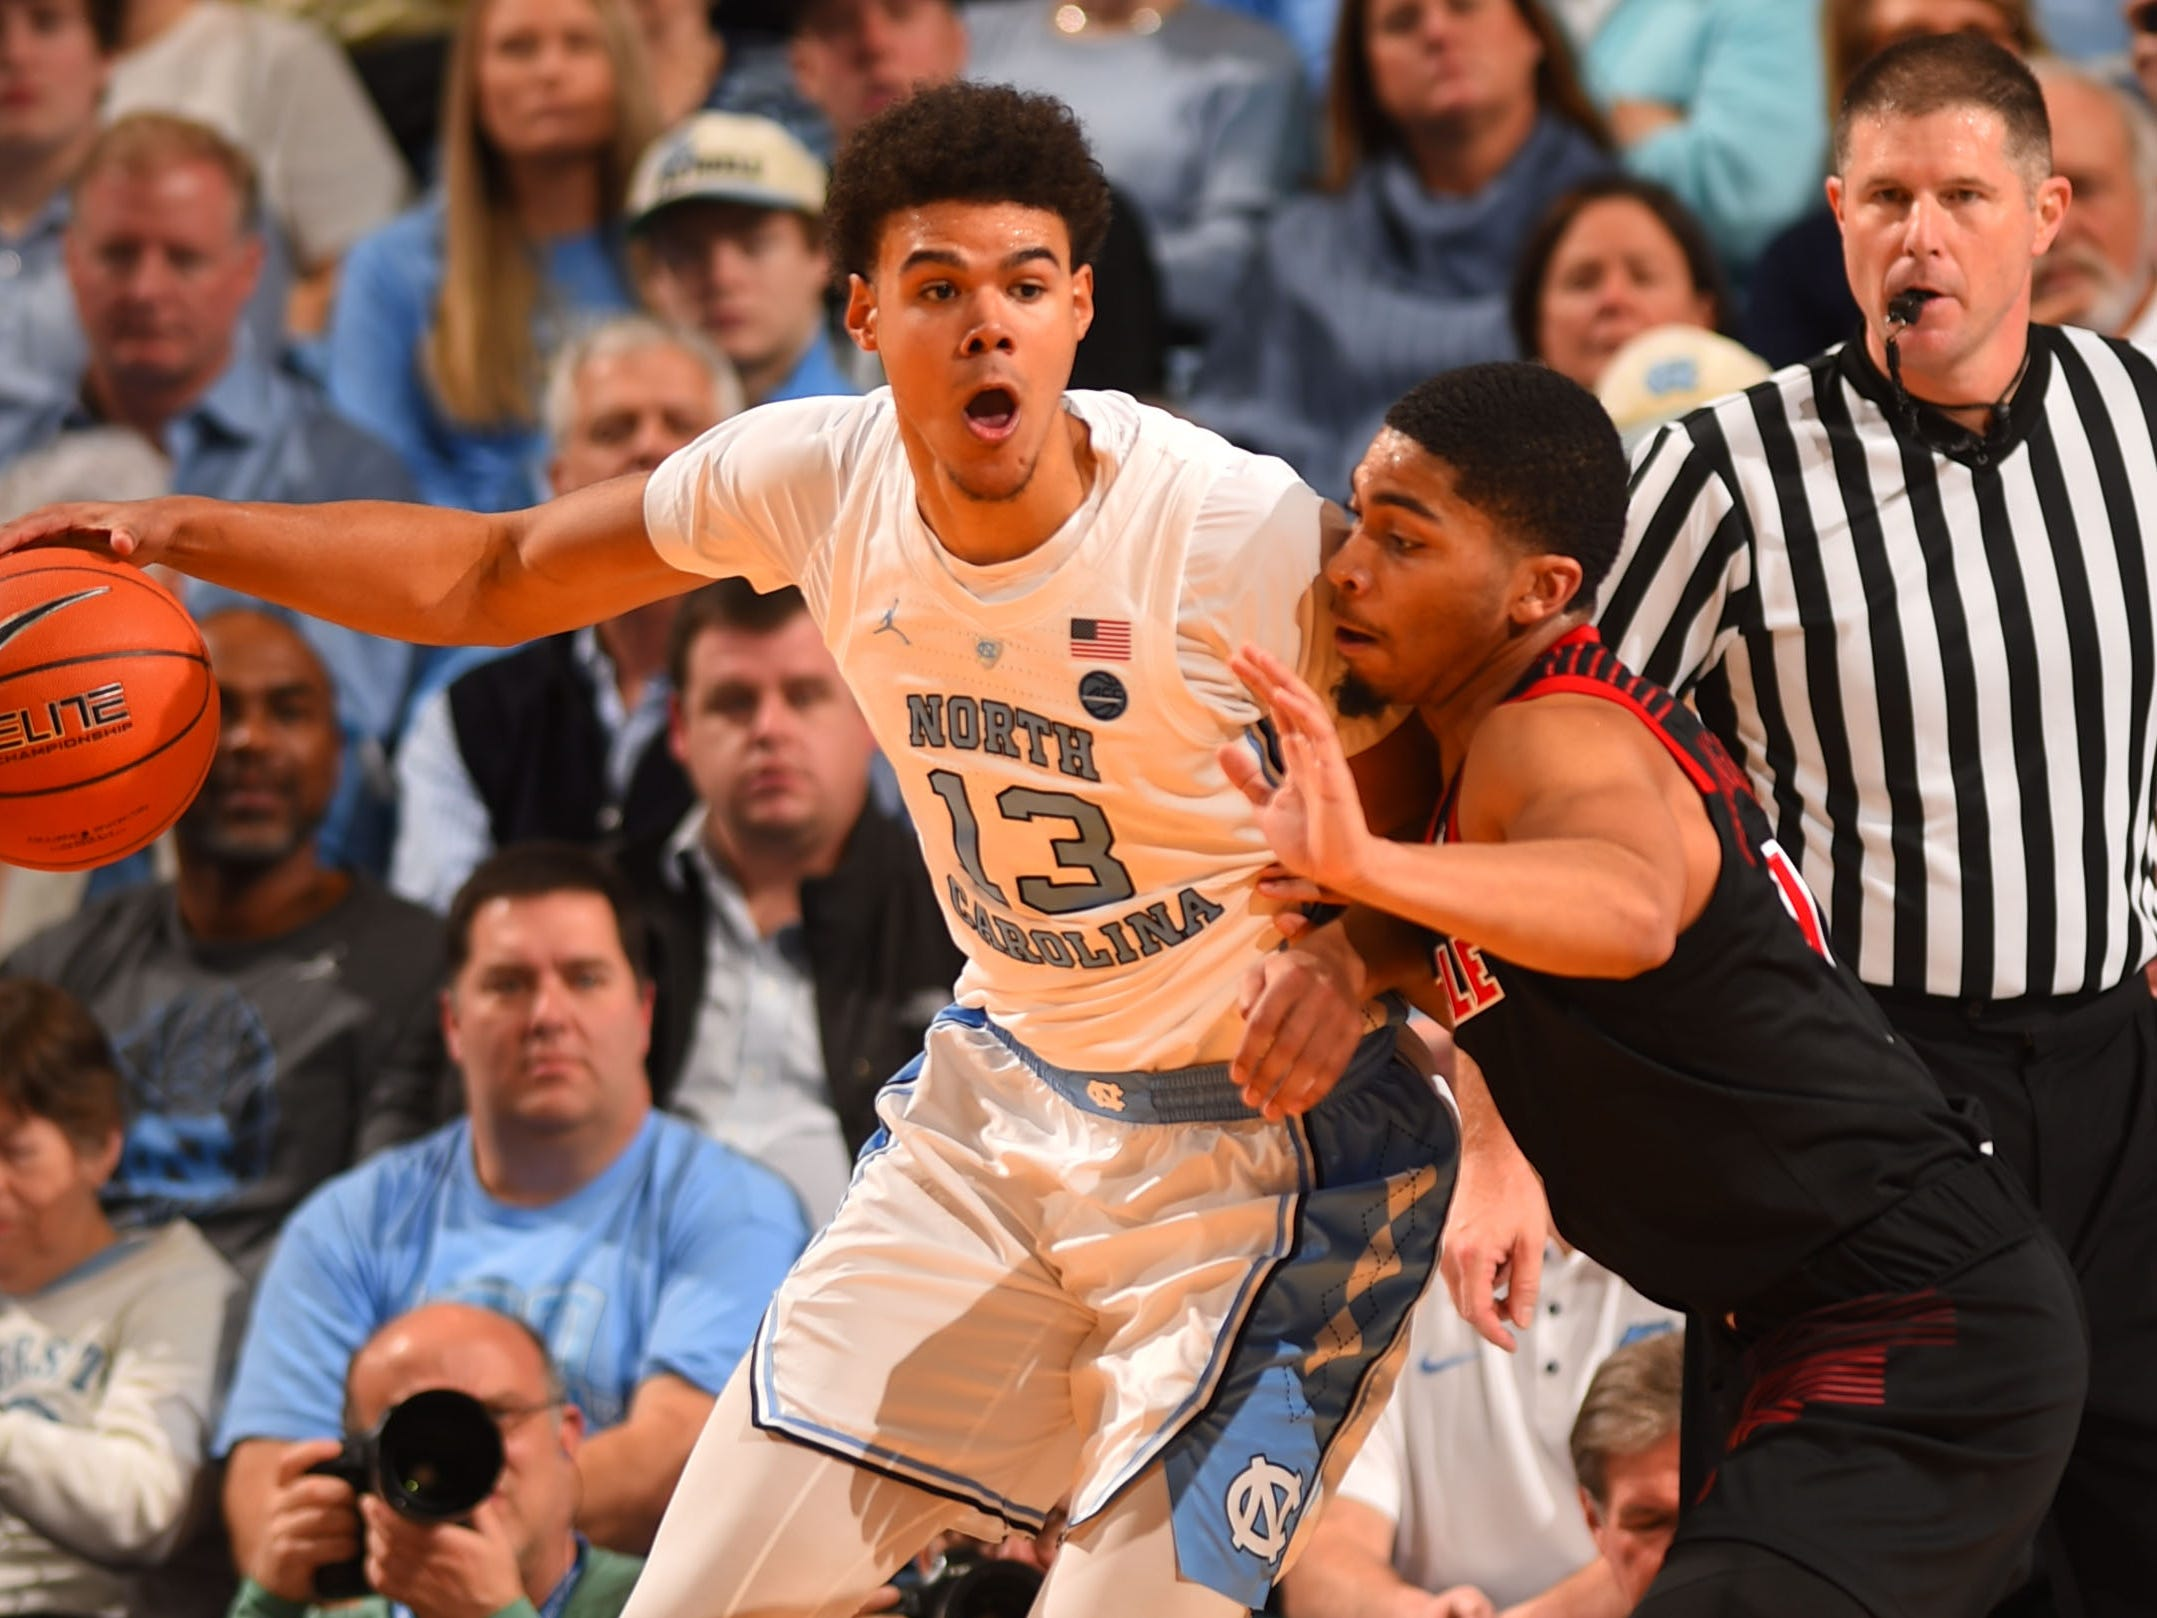 North Carolina Tar Heels guard Cameron Johnson (13) with the ball as Louisville Cardinals guard Christen Cunningham (1) defends at Dean E. Smith Center in Chapel Hill, North Carolina, on Saturday, Jan. 12, 2019.